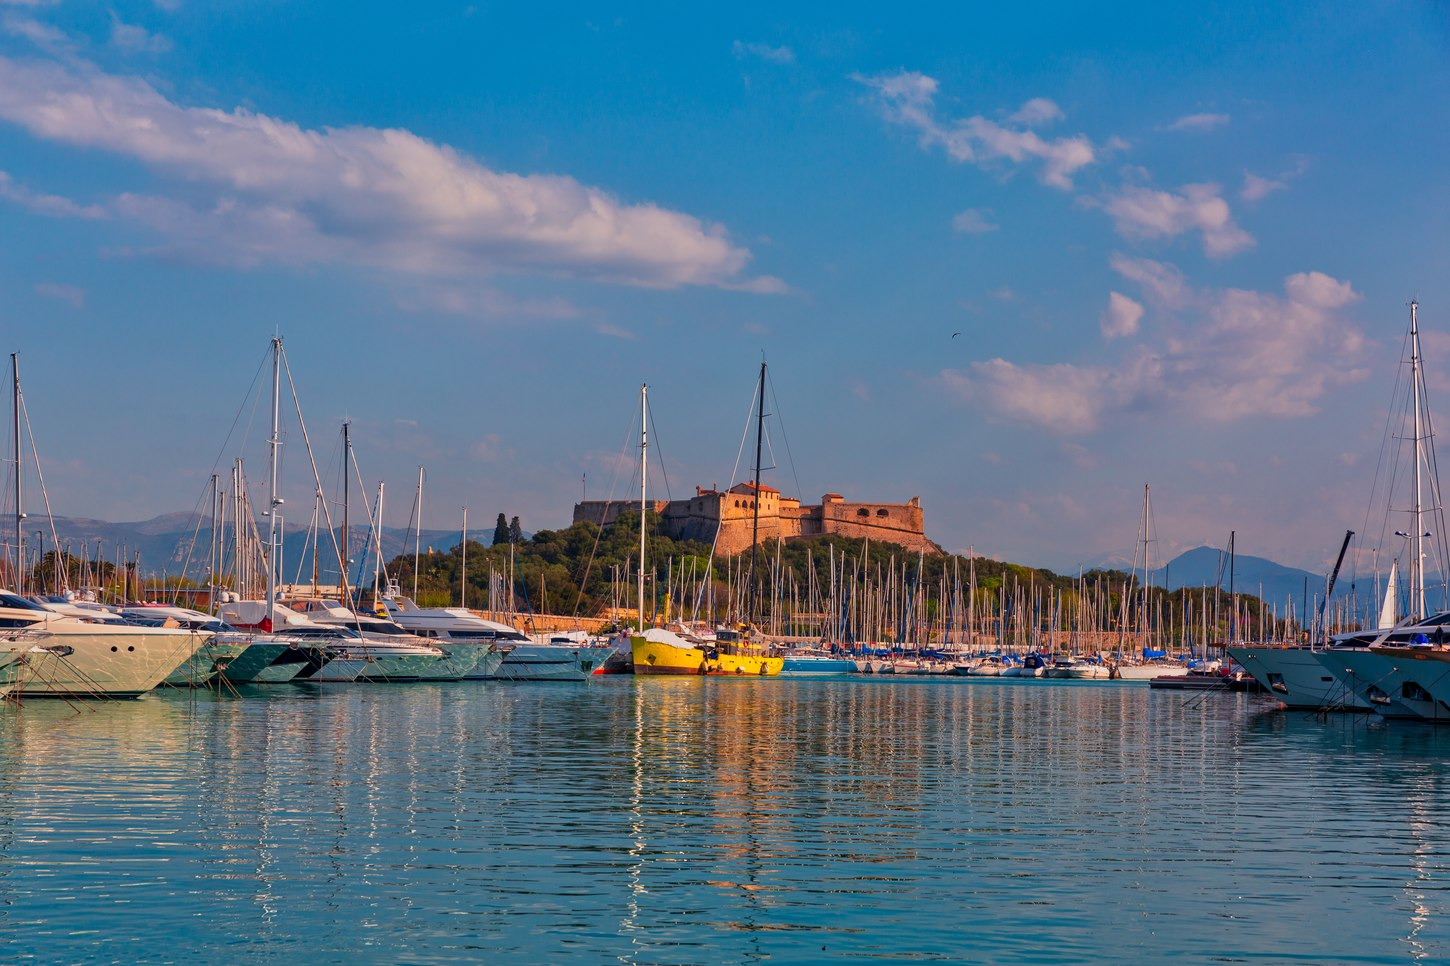 Things to see & do in Antibes